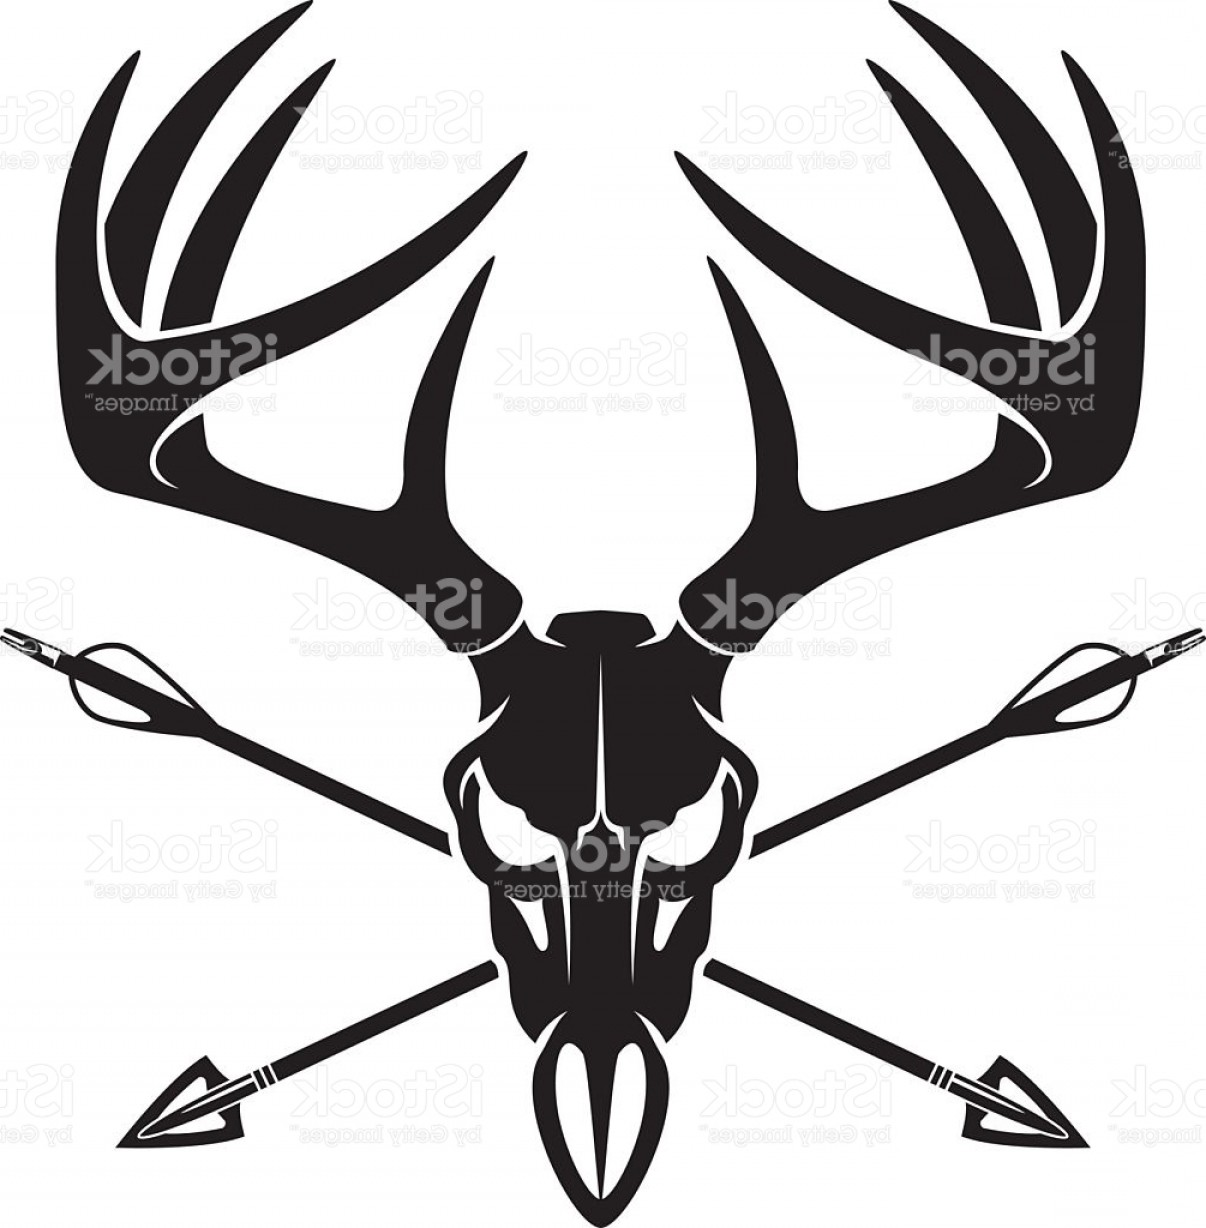 Vector Clip Art Hunting: Whitetail Deer Buck Skull With Crossing Hunting Arrows Gm